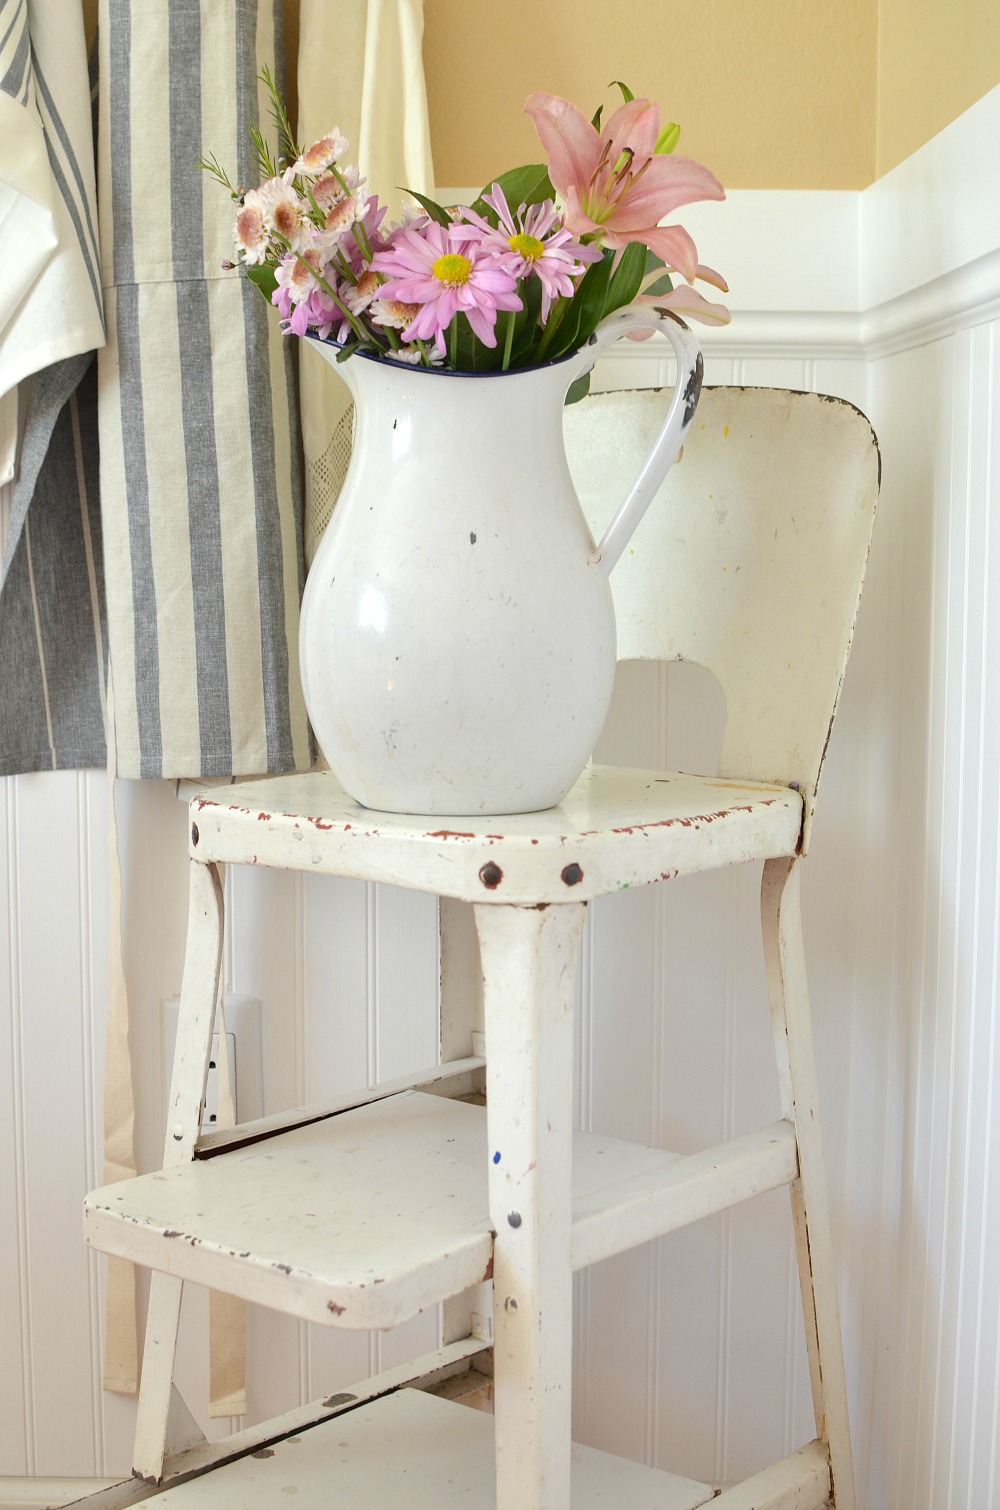 Friday Favorites: A vintage chair and a pitcher of flowers for spring.